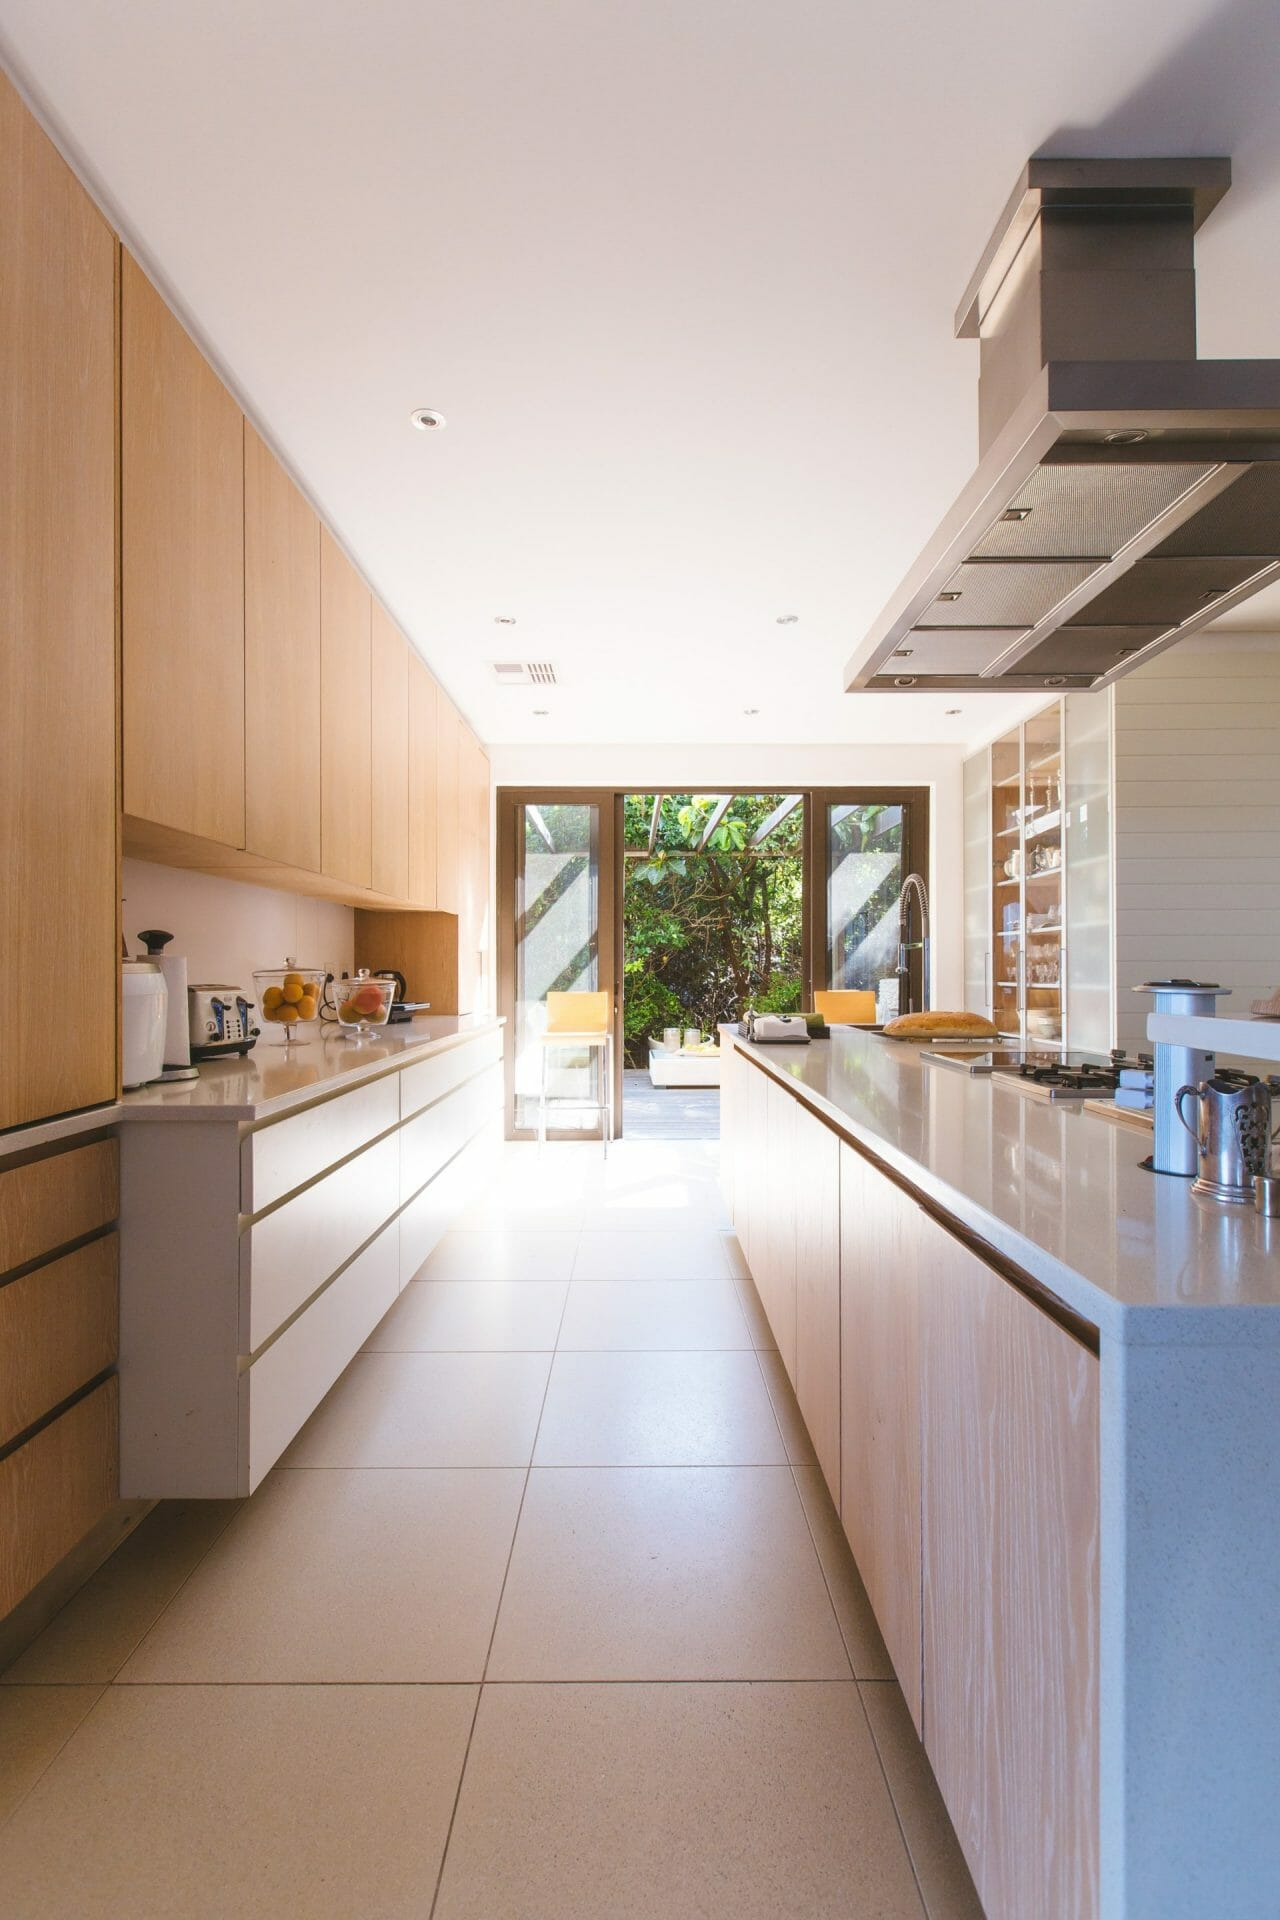 Picture of kitchen for Real Estate News for Investors Podcast Episode #502